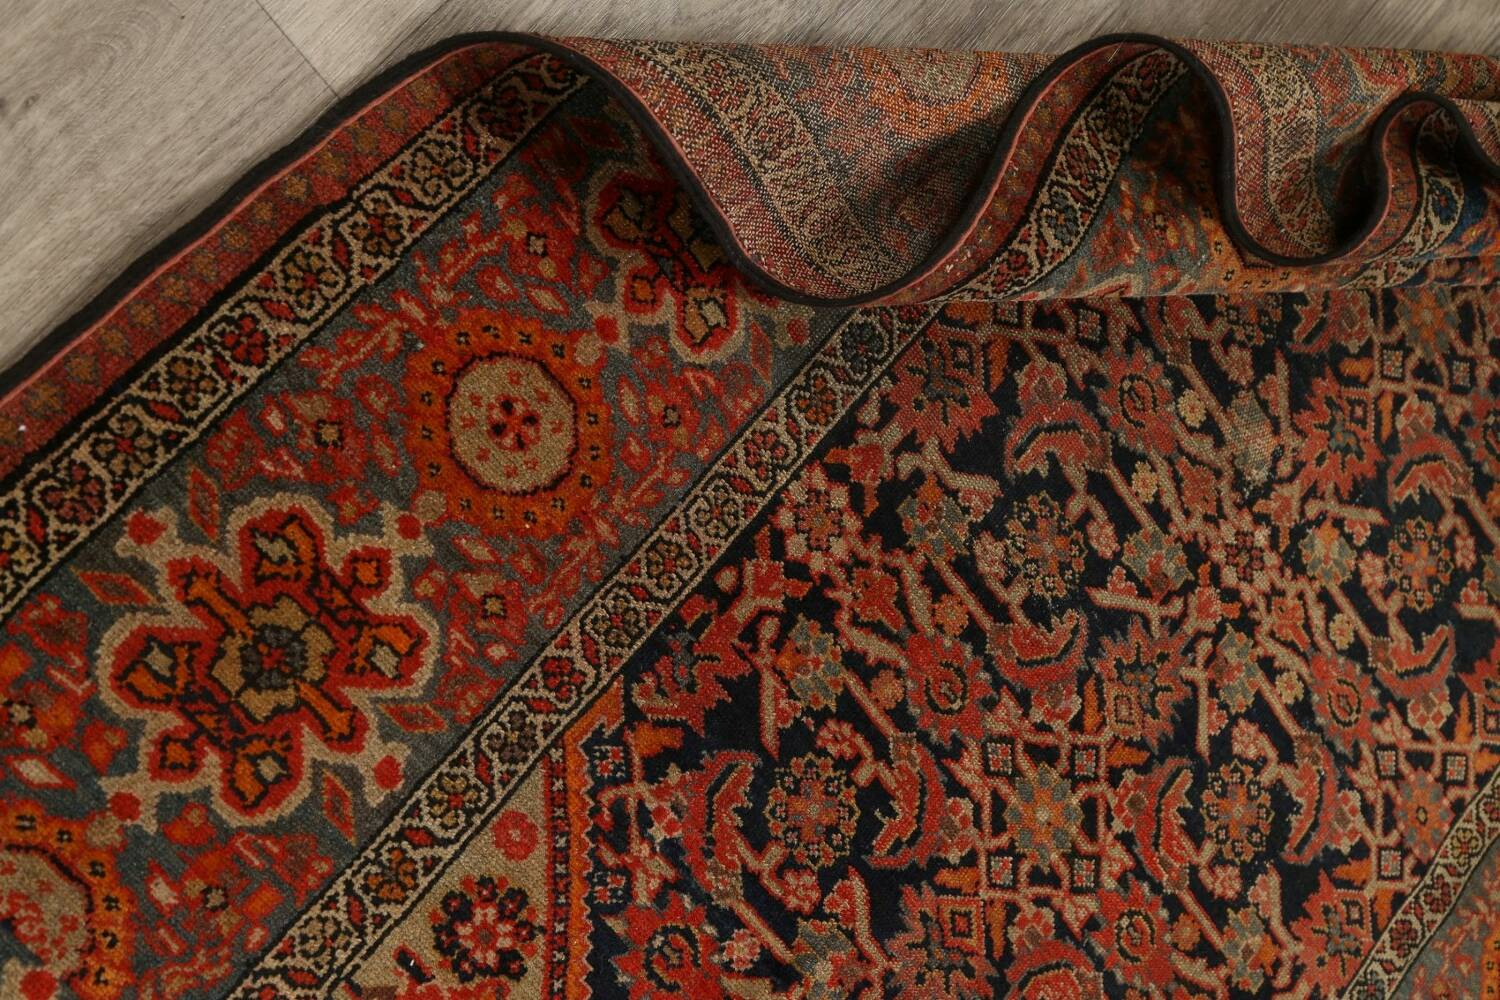 Pre-1900 Antique Vegetable Dye Malayer Persian Area Rug 4x6 image 17